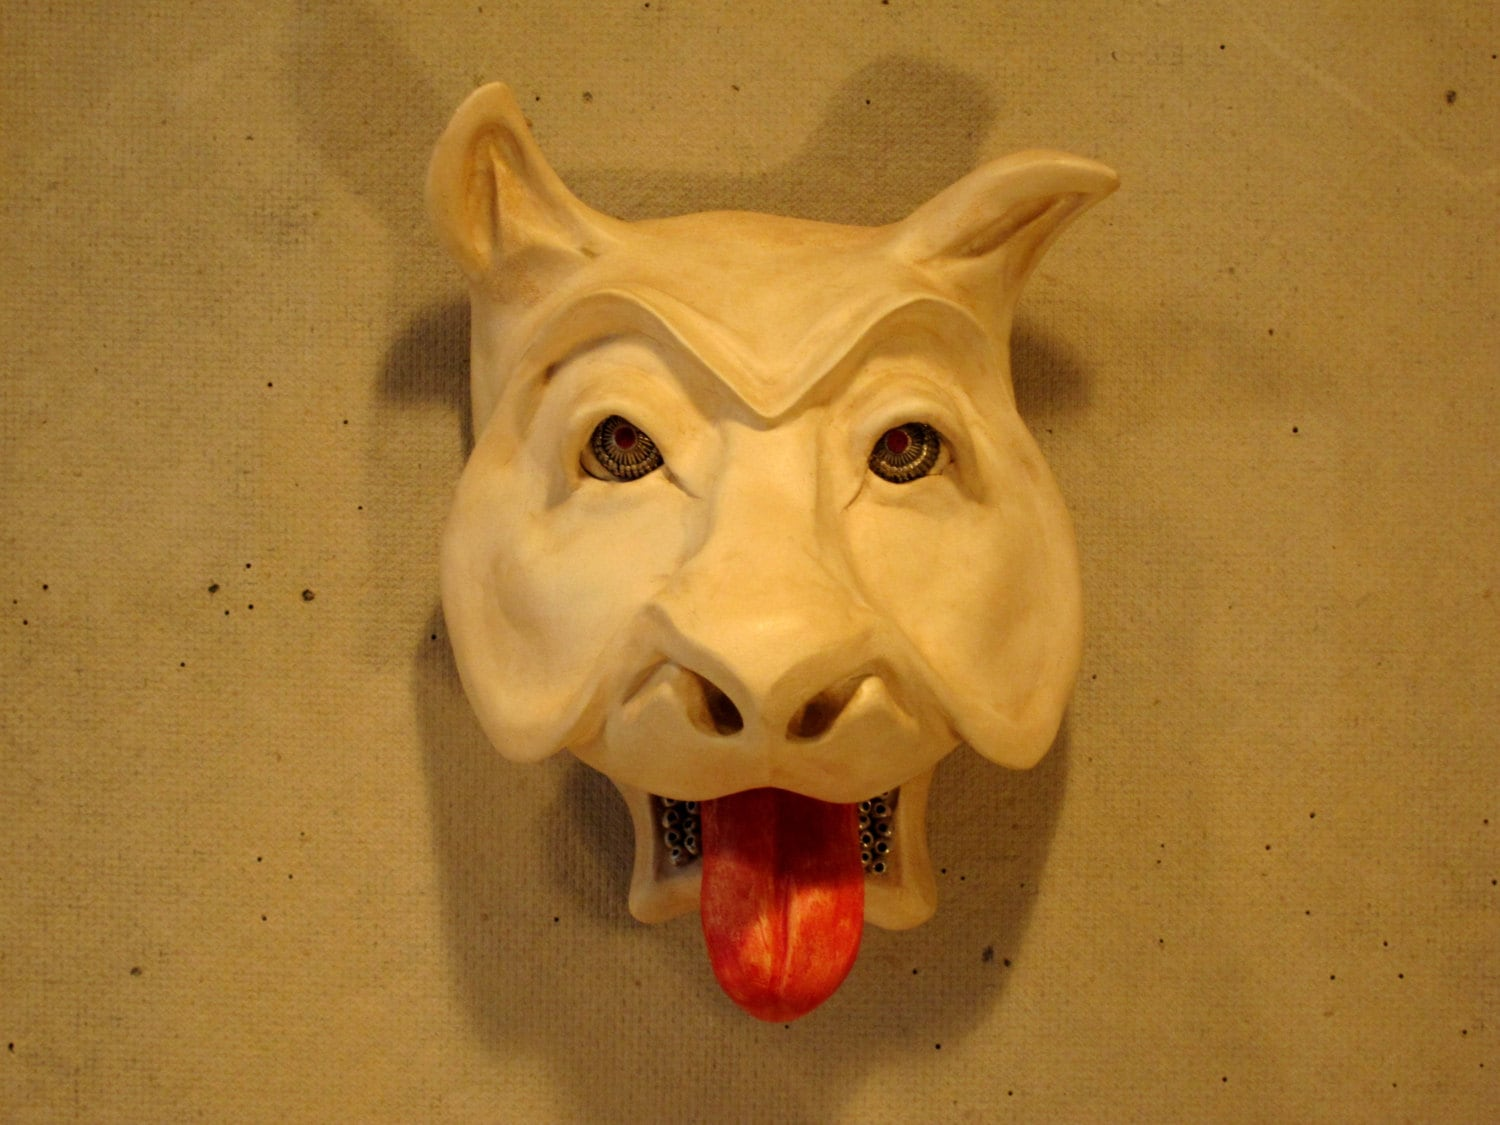 Mask Sculpture Wall Art Paperclay One-of-a-Kind Manimal